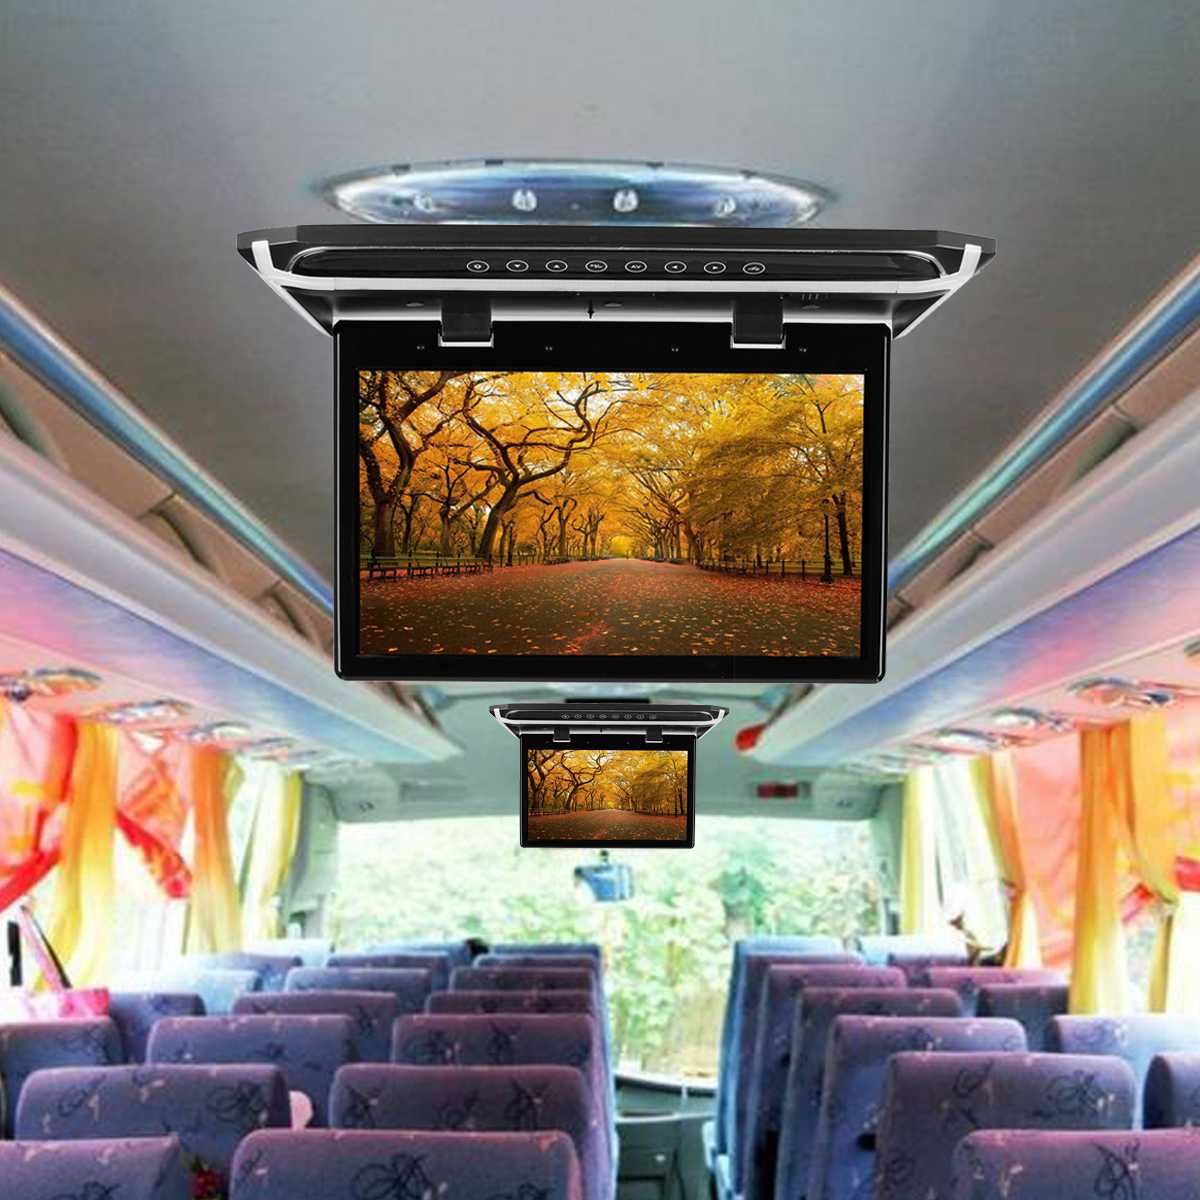 15.6 HD Wide Screen Car DVD Player HDMI Car Ceiling Flip Down Monitor Roof Mount Player 1920*1080